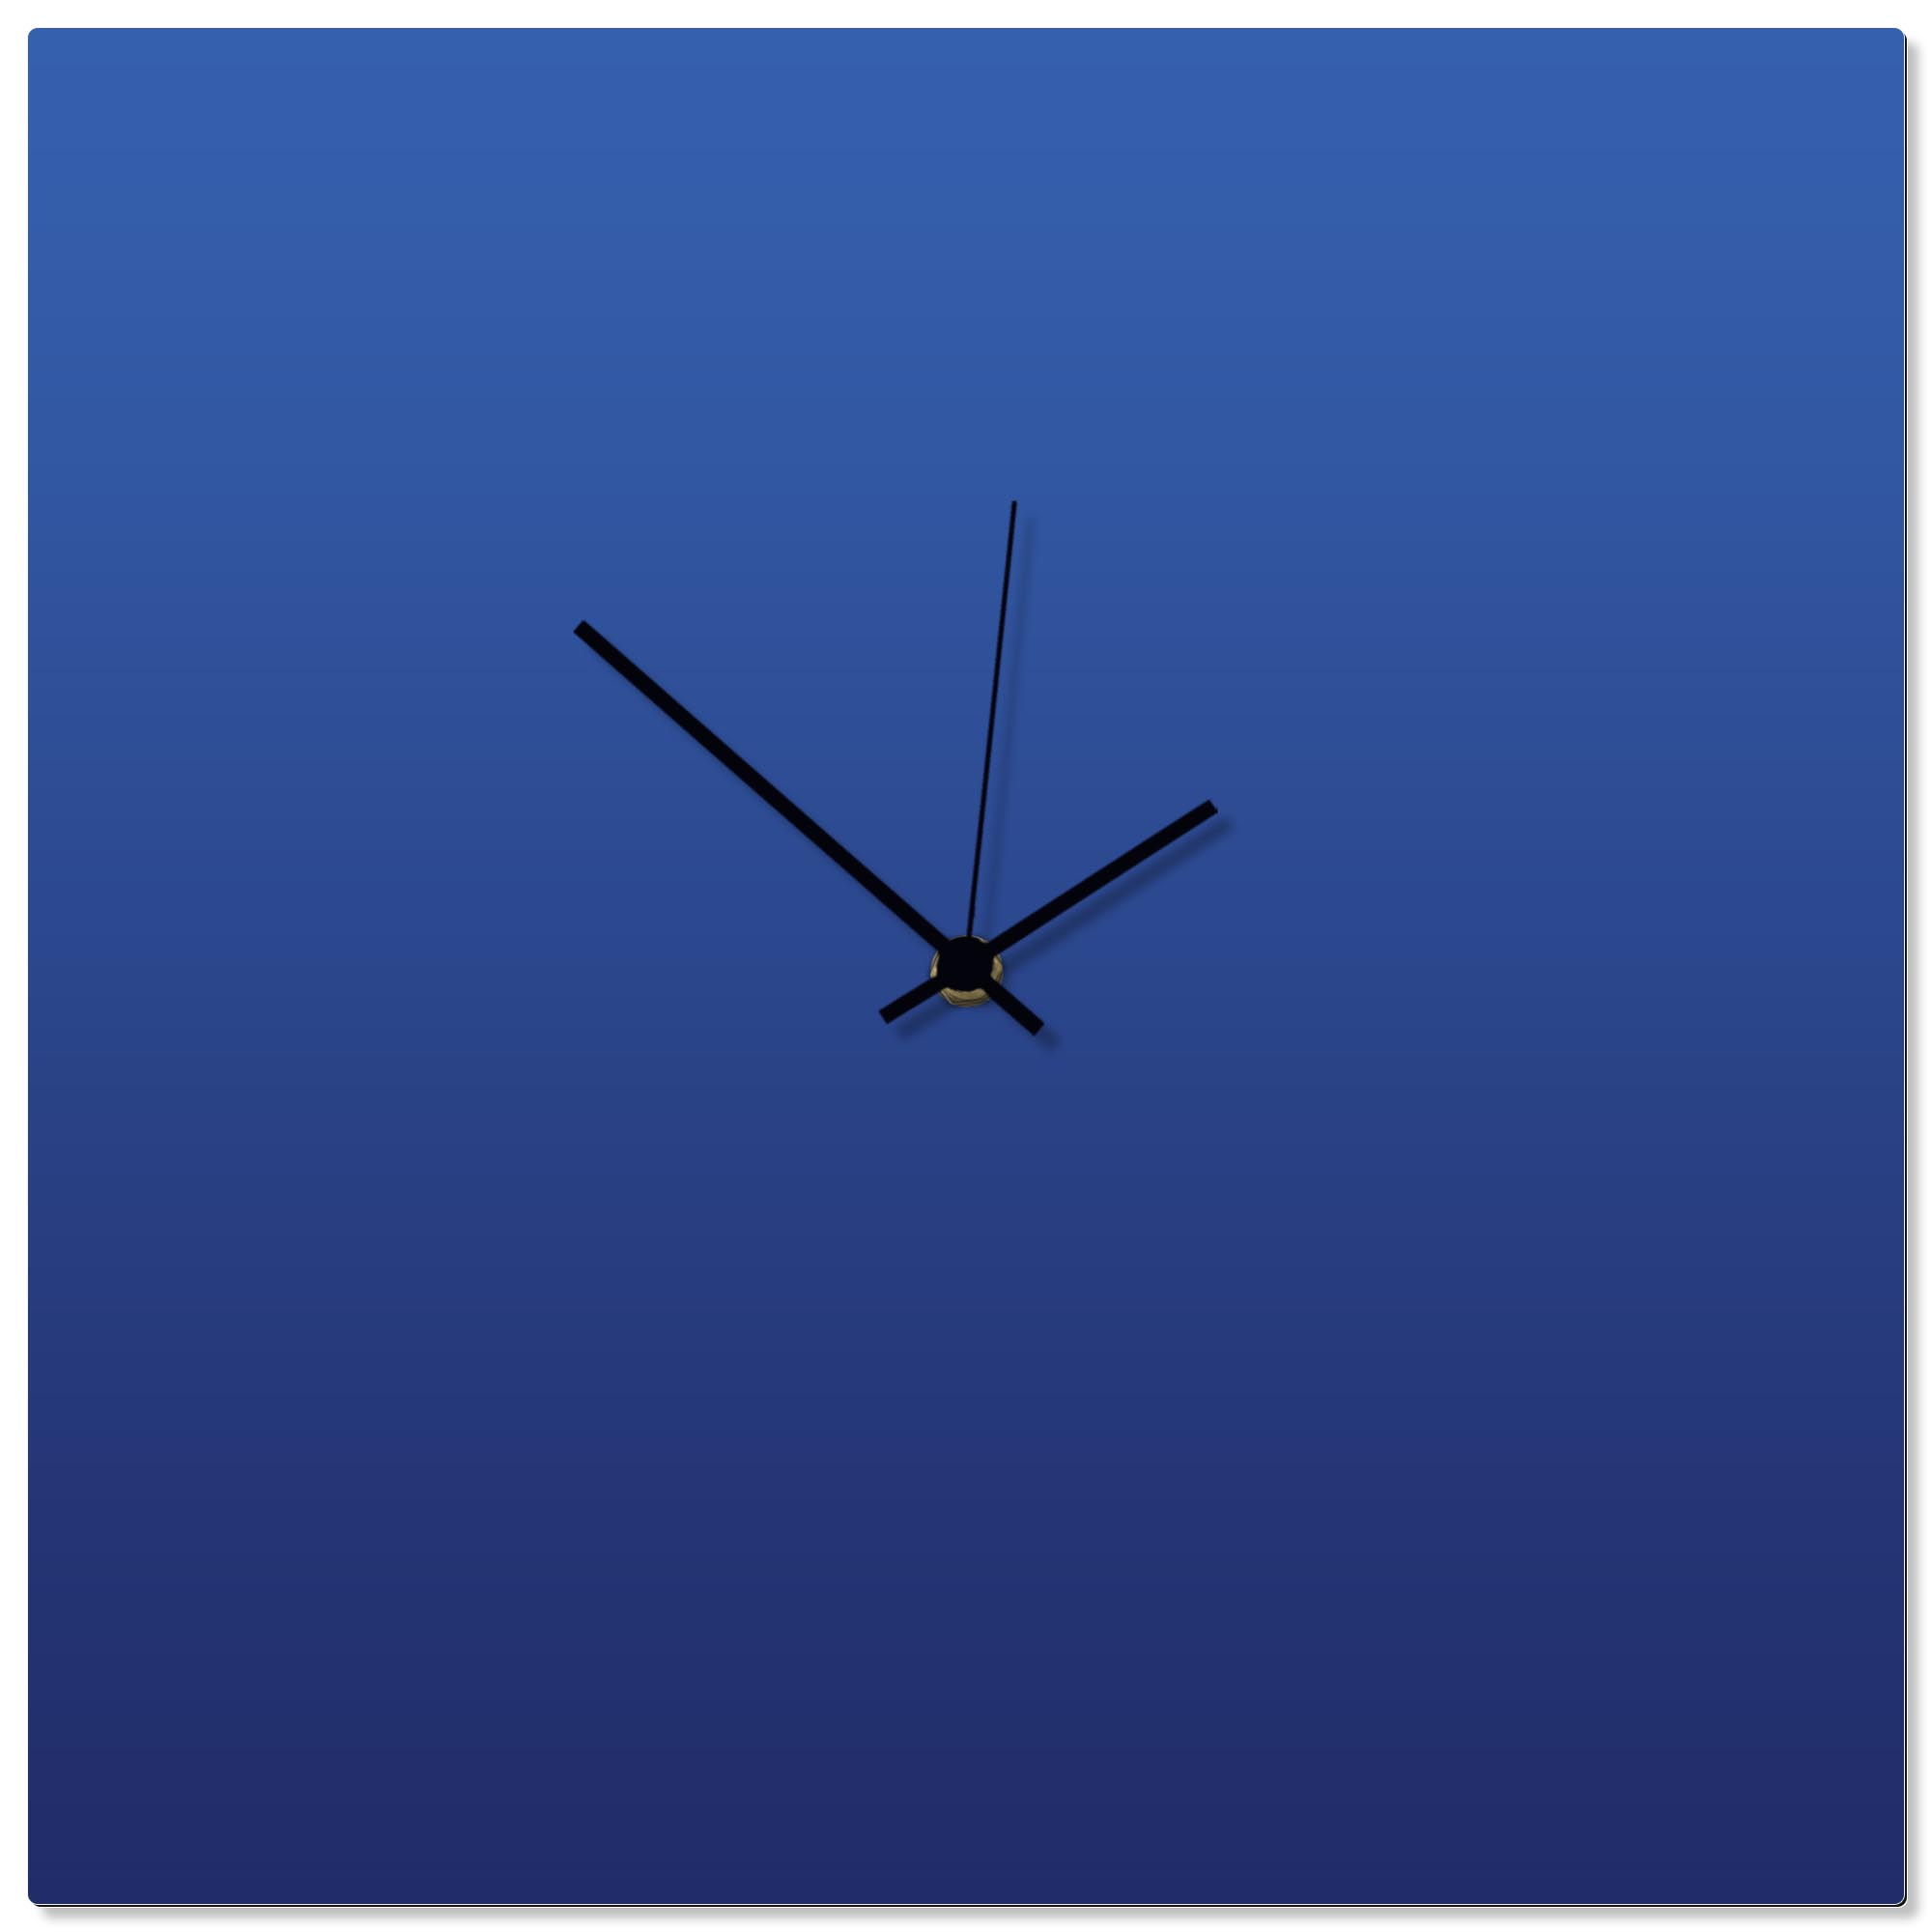 Blueout Black Square Clock 16x16in. Aluminum Polymetal